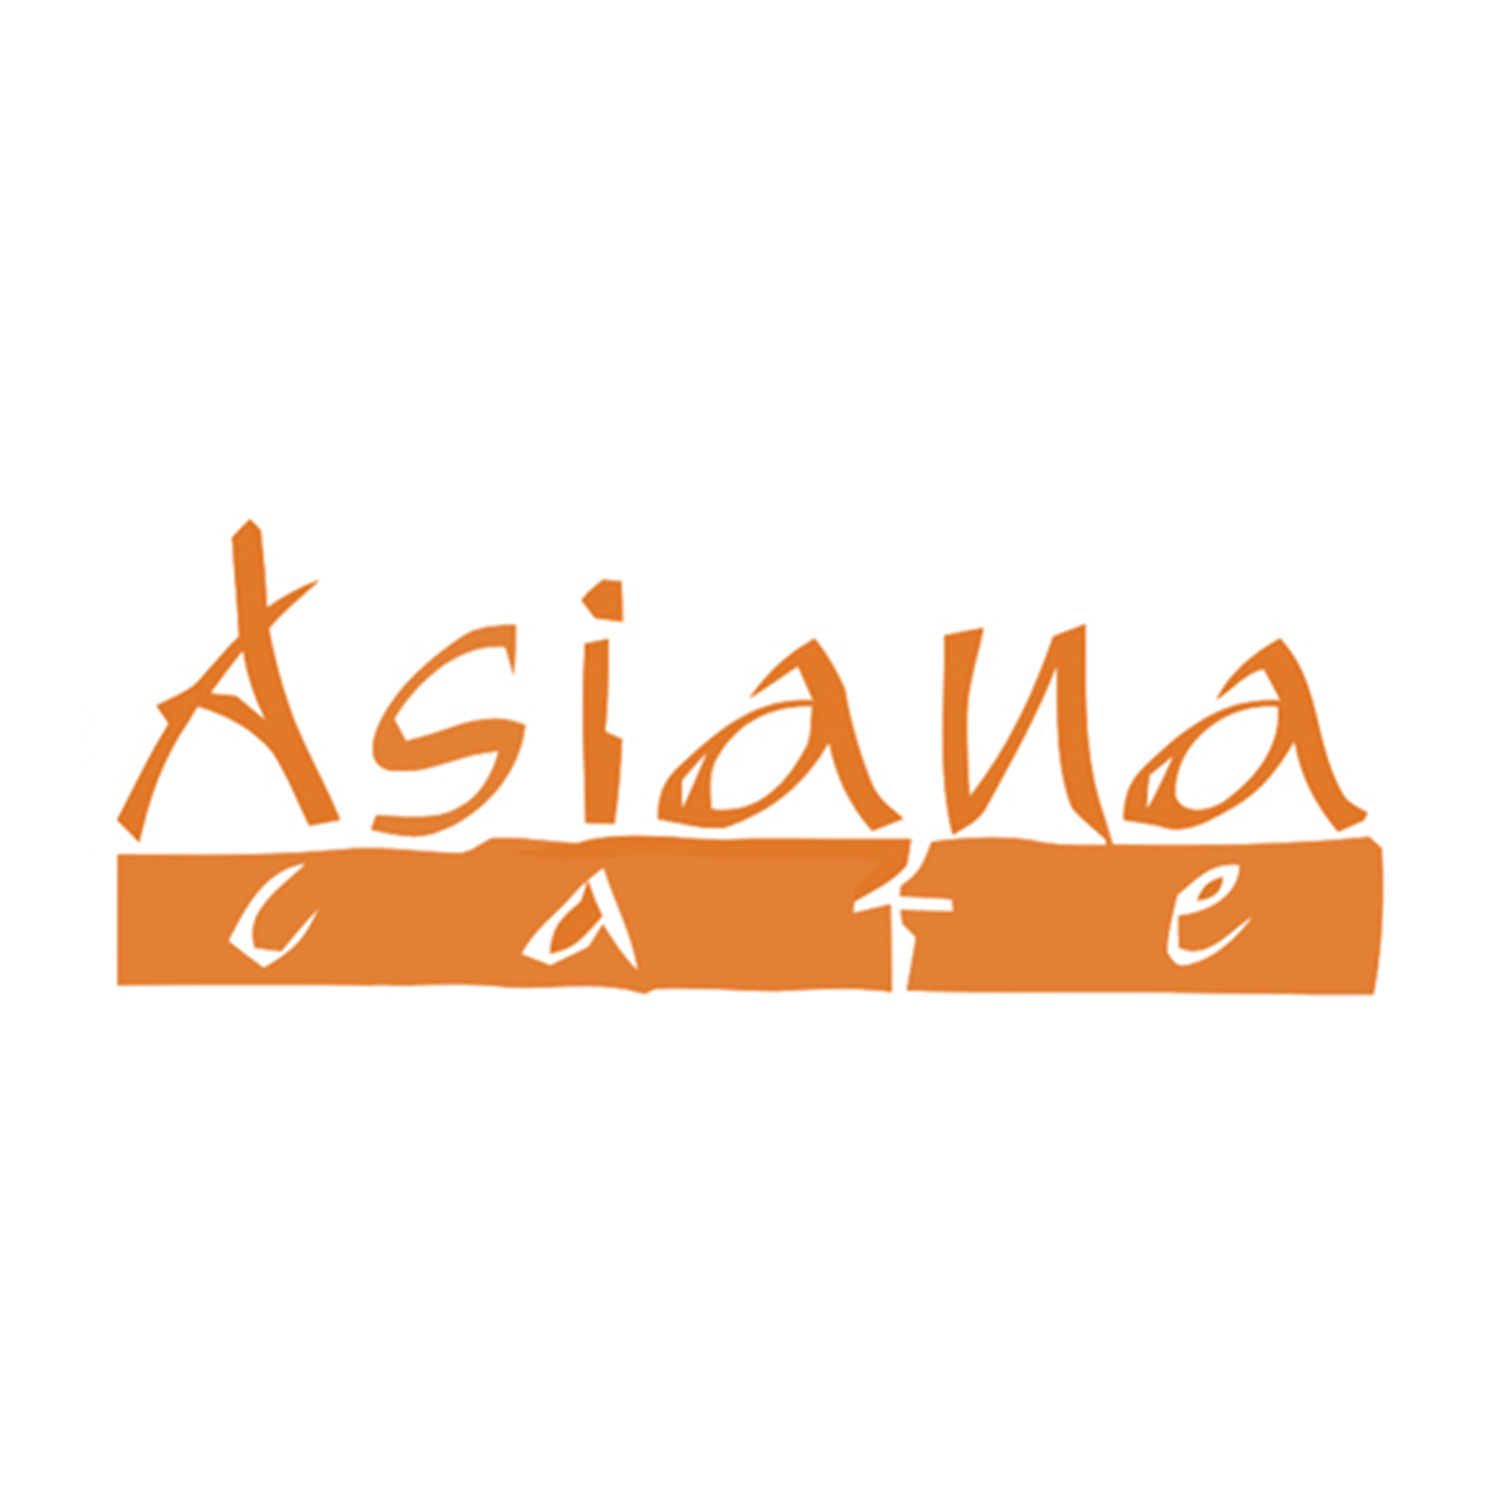 Asiana Cafe: The menu merges Chinese & American fare with sushi, while the dining room sports a modern look.